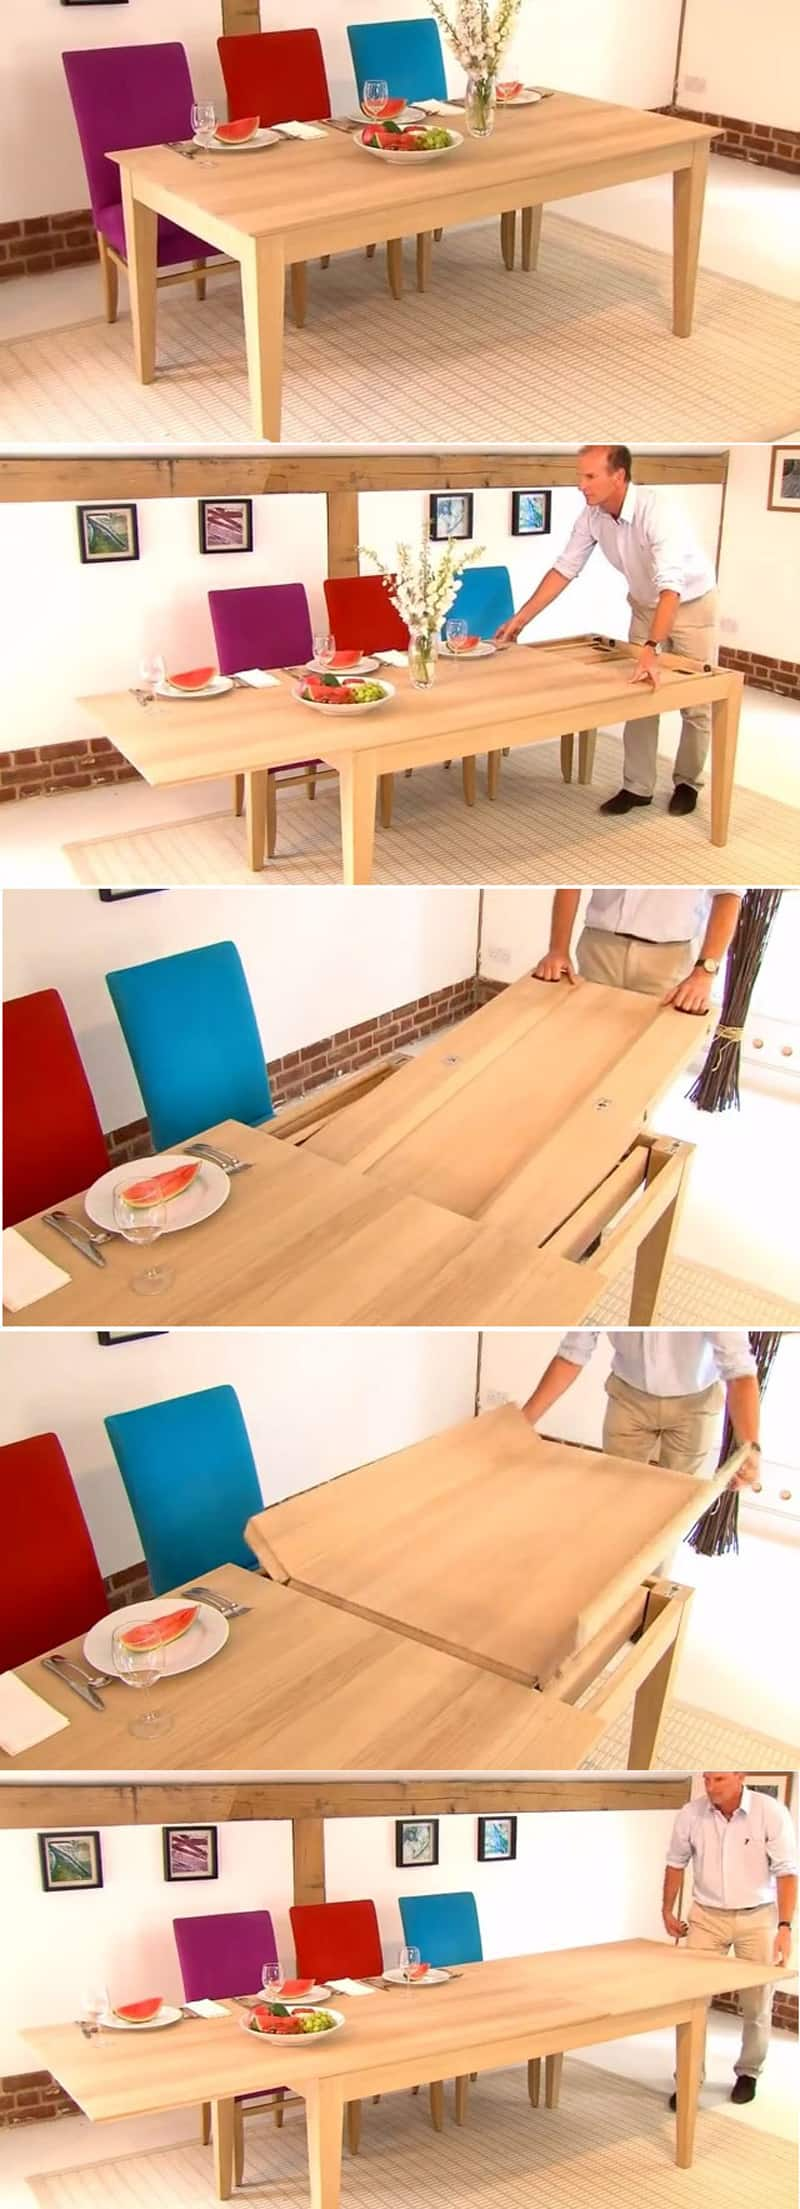 extendable-dining-tables_ DESIGNRULZ (23)